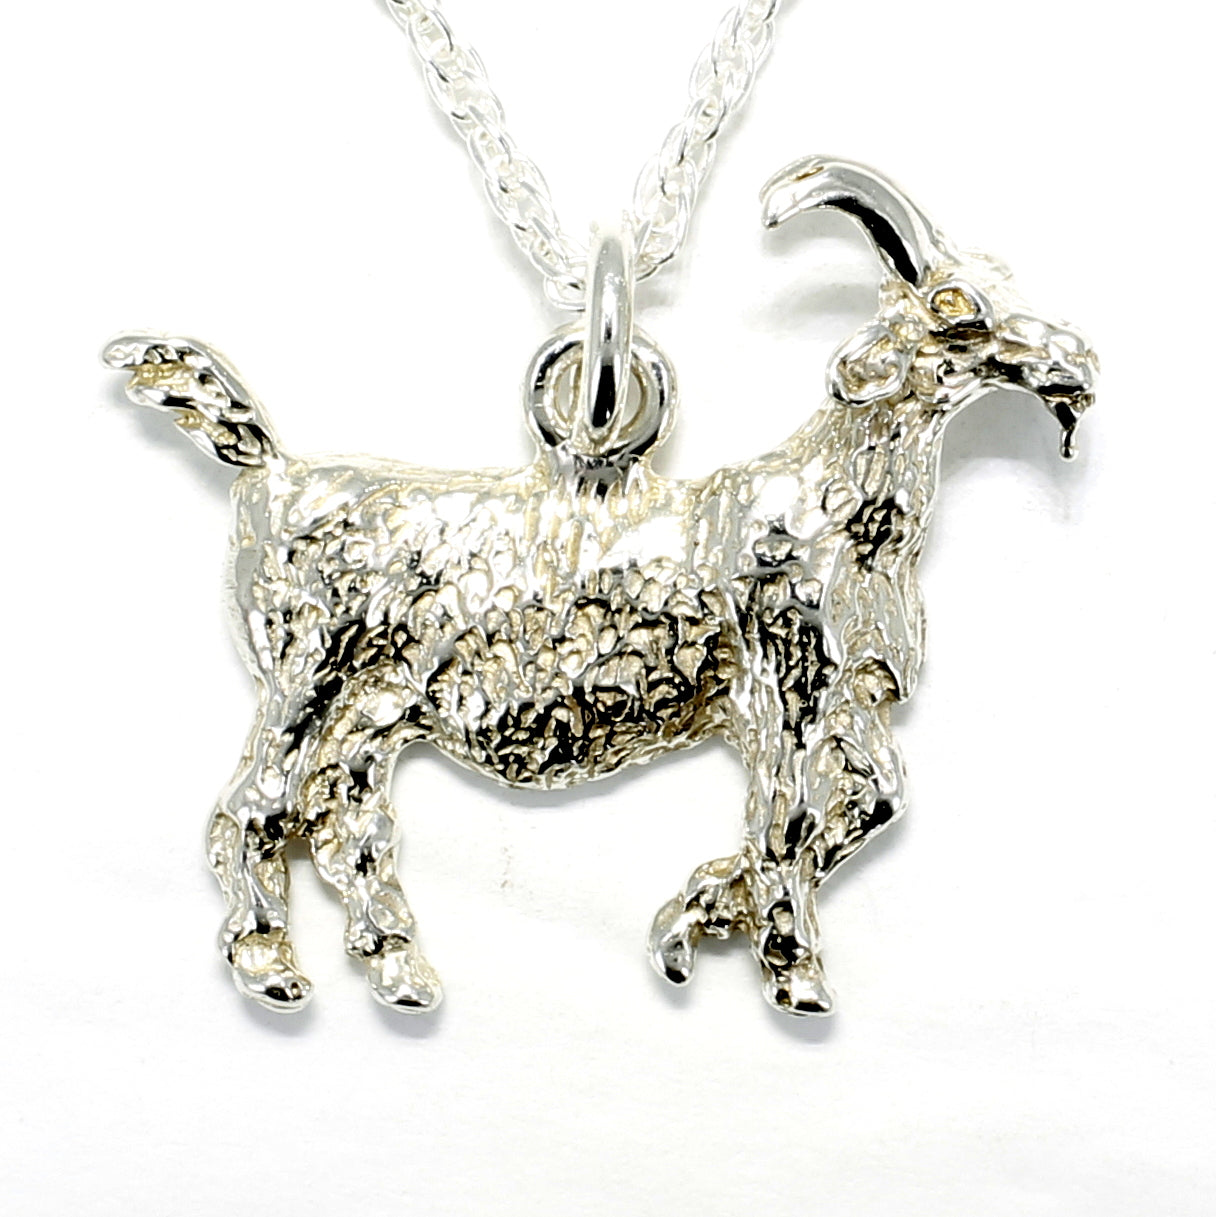 925 Sterling Silver Muntain Goat Charm Made in USA